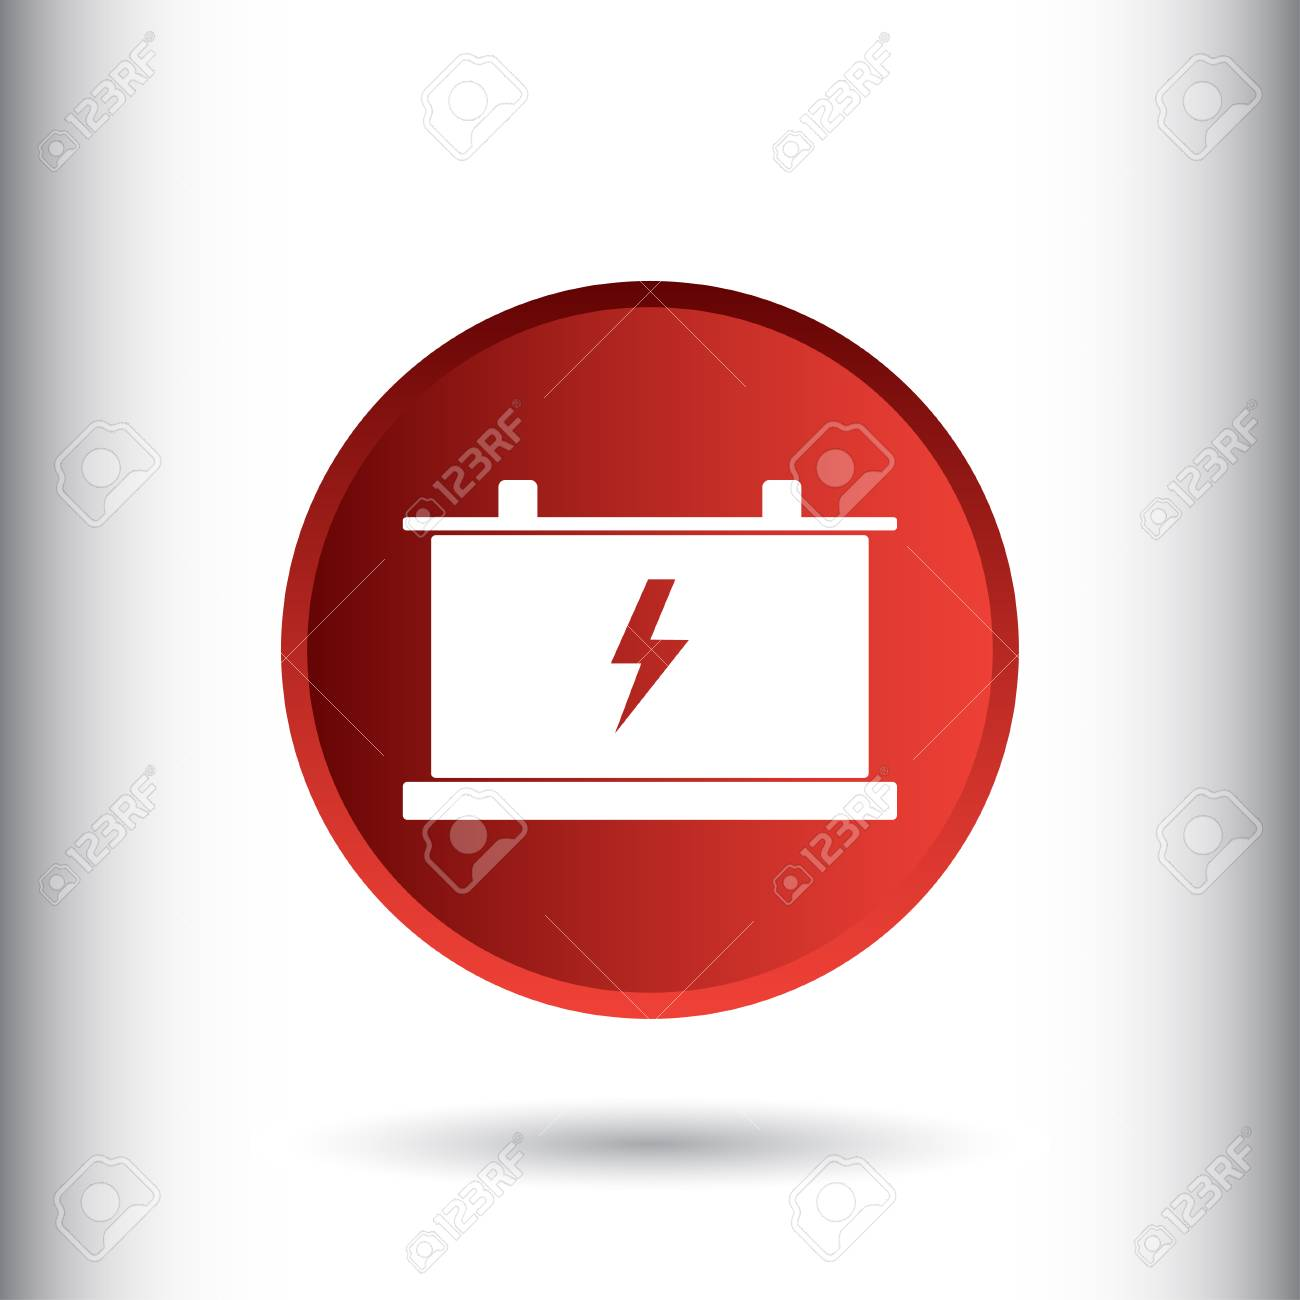 Battery Sign Icon Vector Illustration Car Battery Symbol Flat